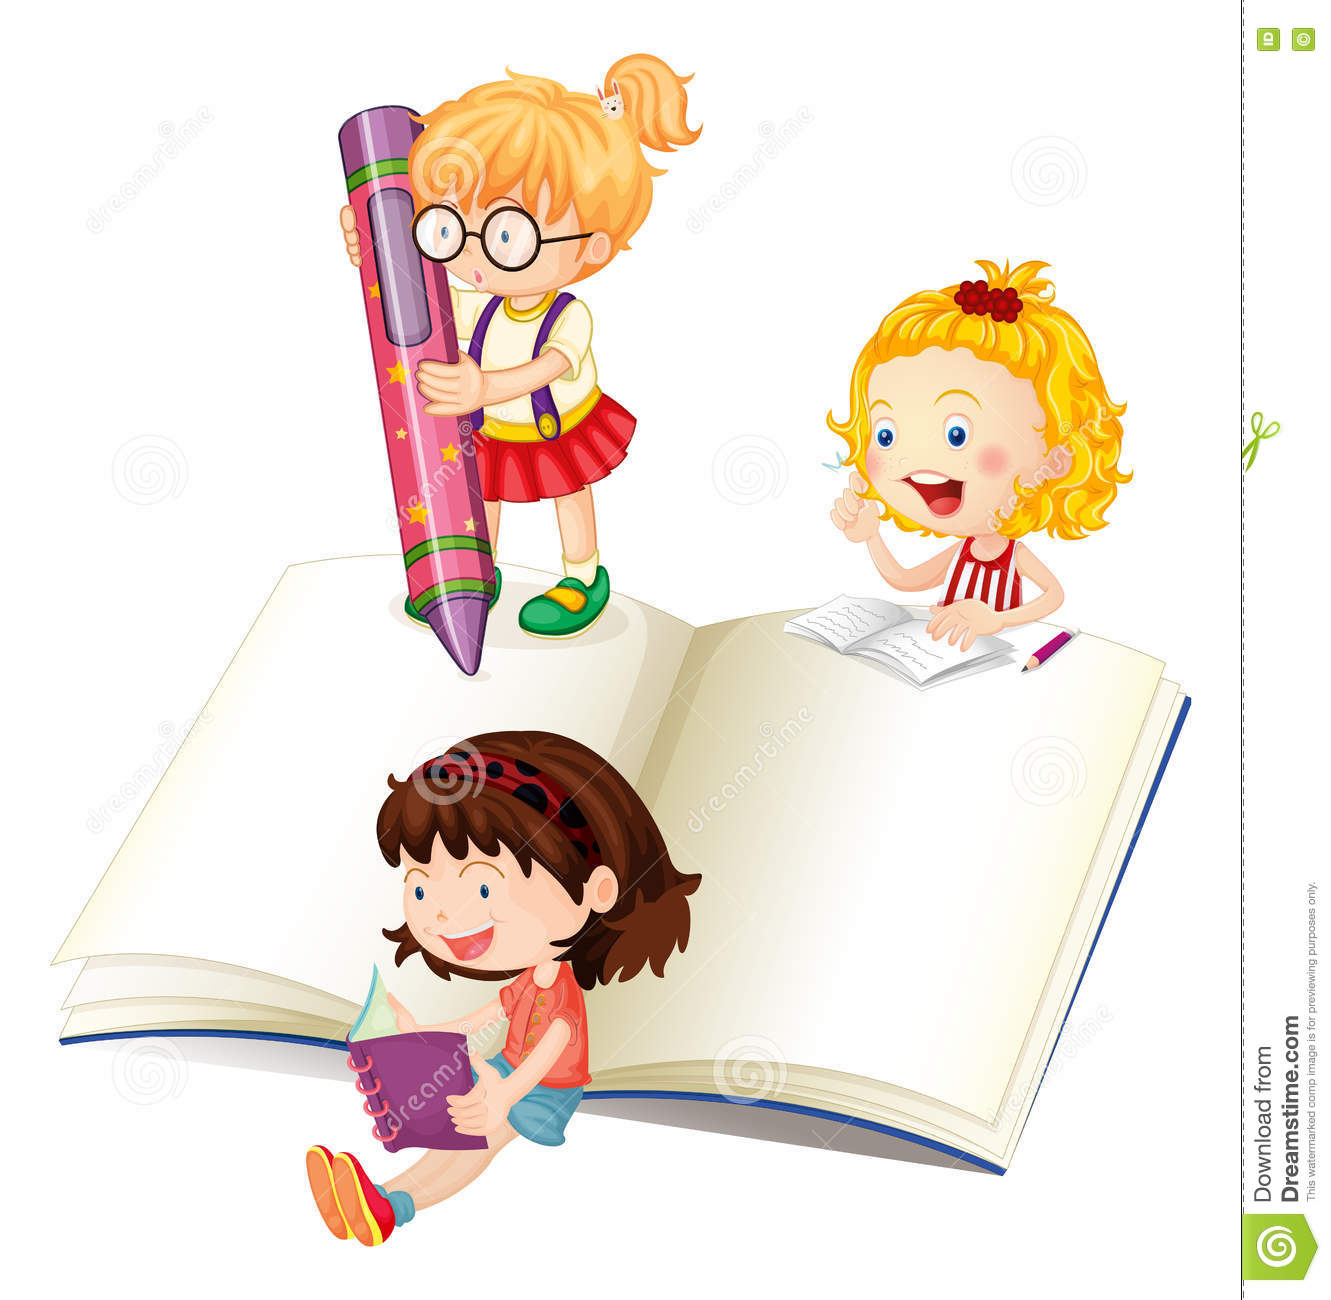 reading books 2 essay Reading aloud to your baby stimulates developing senses, and builds listening and memory skills that can help your baby grow up to be a reader.